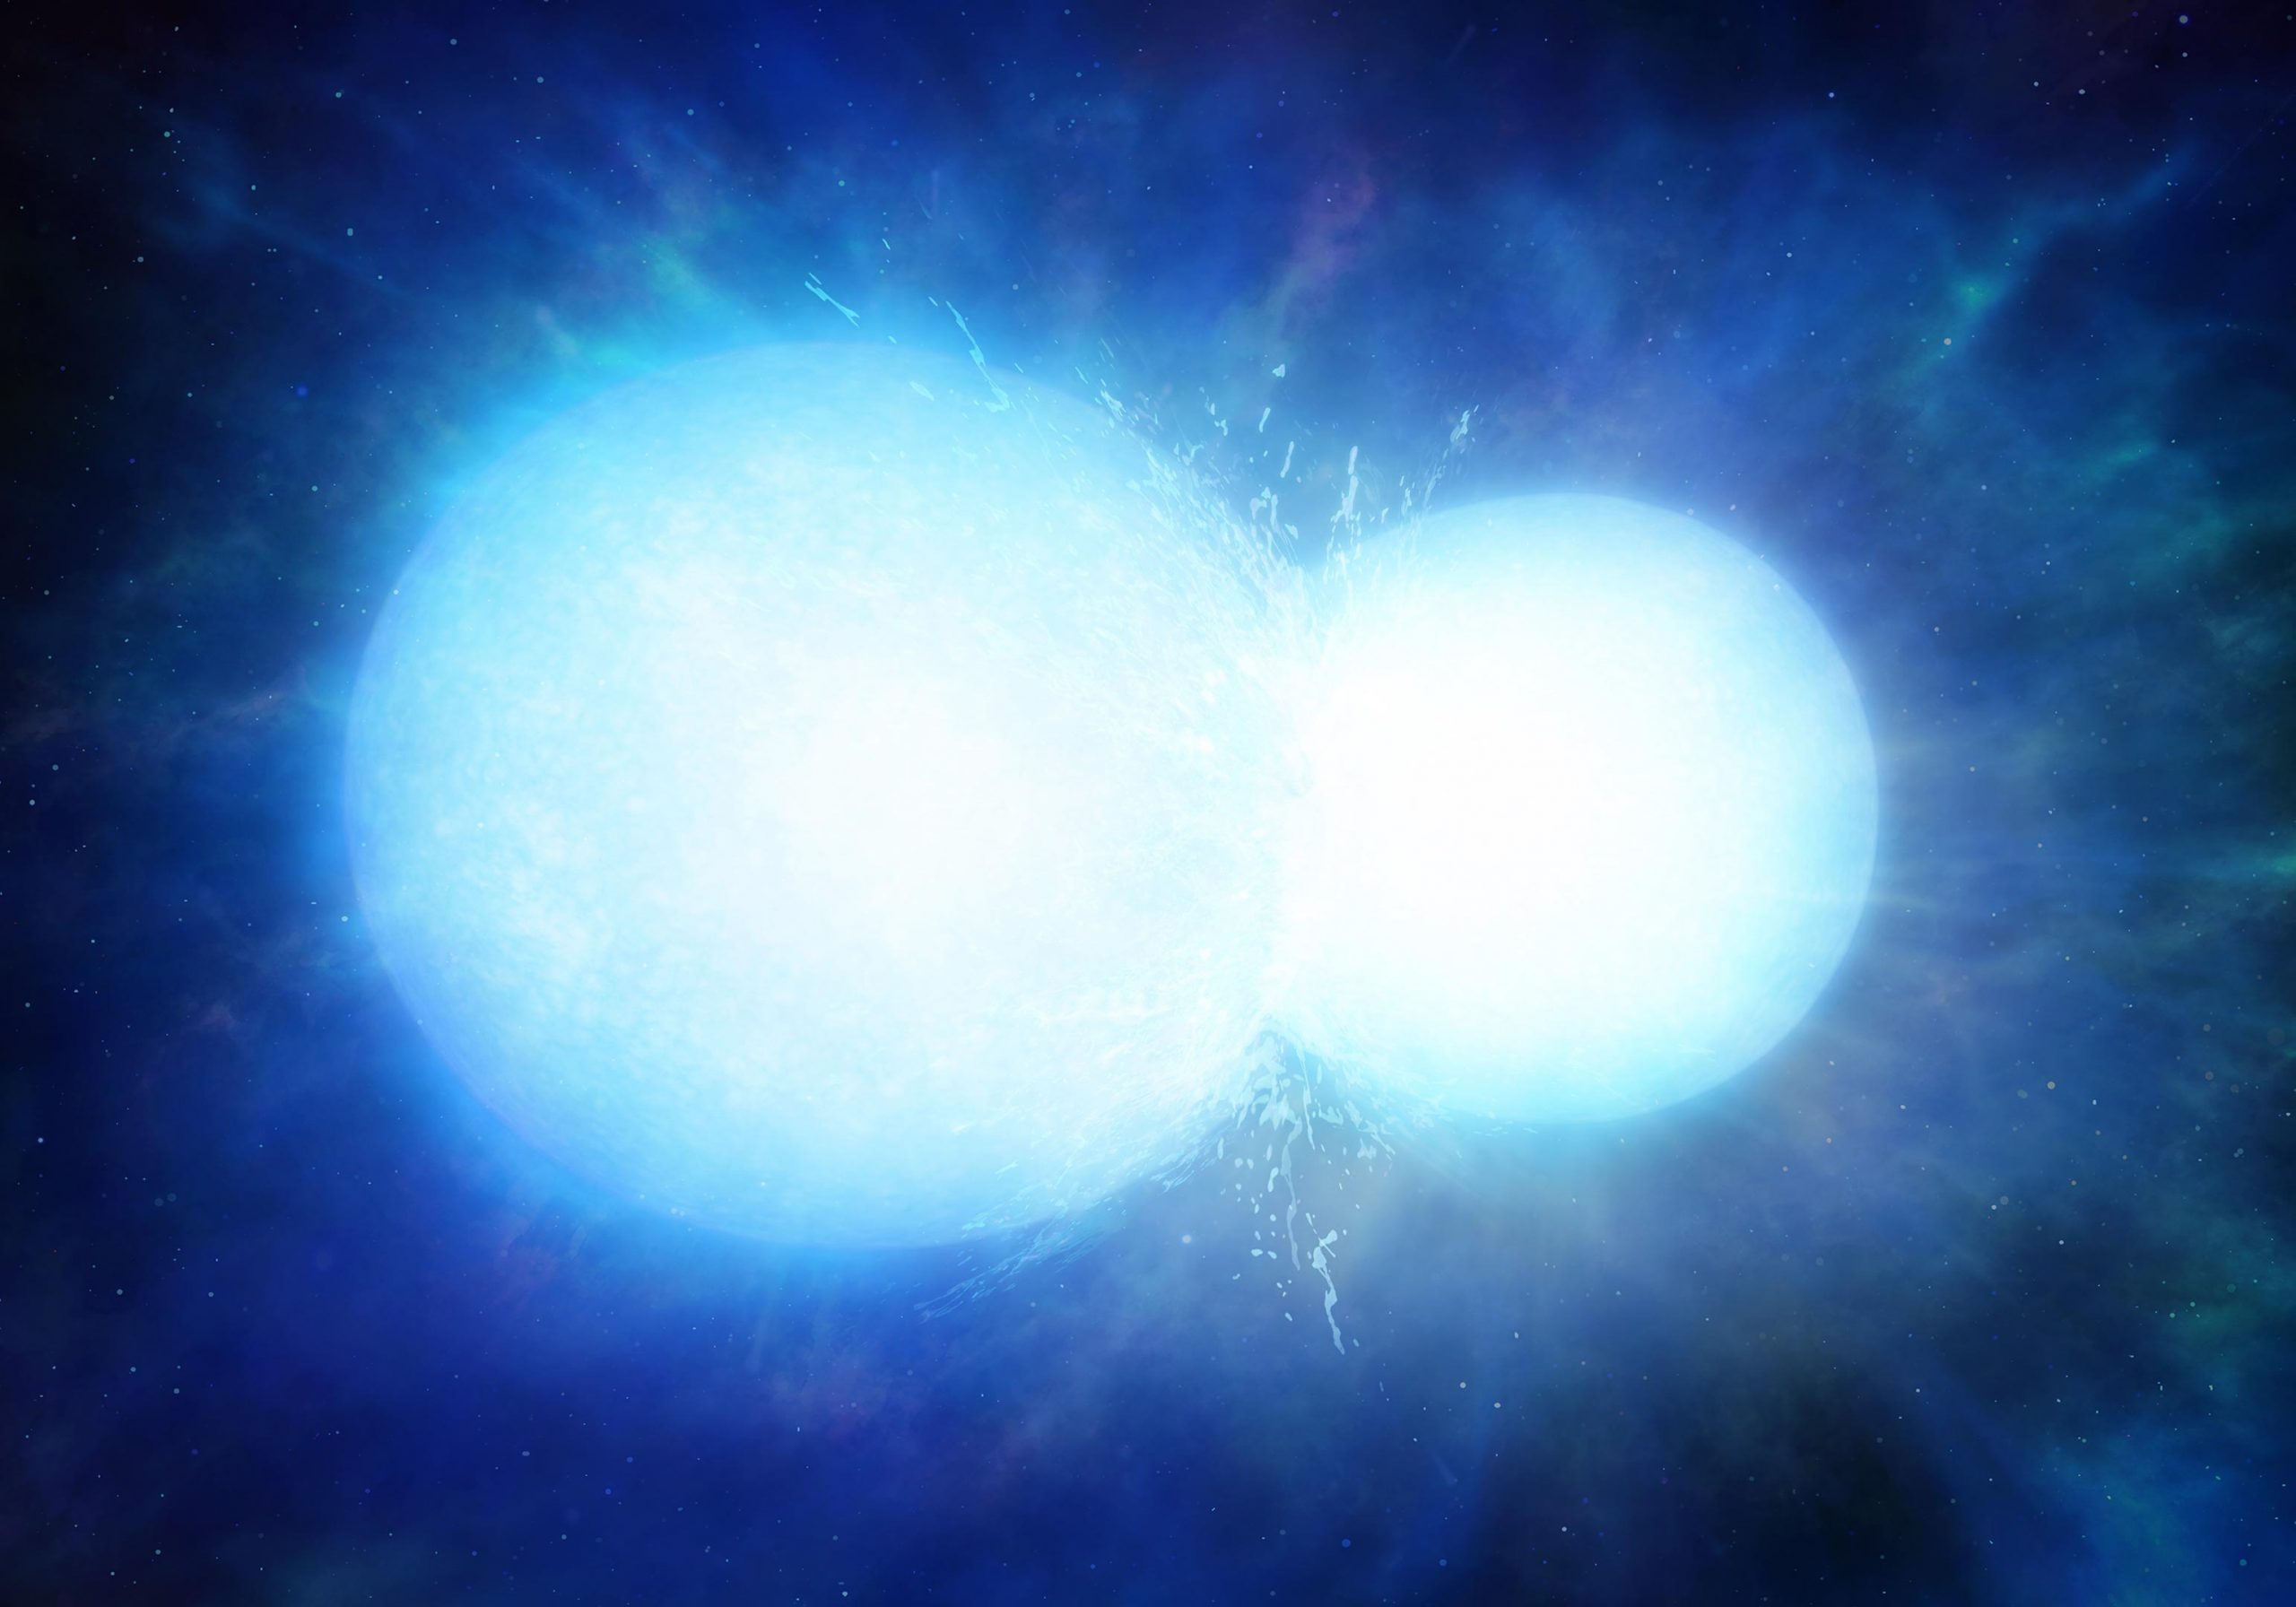 Ultra-massive white dwarf star with 'unusually high' carbon levels discovered